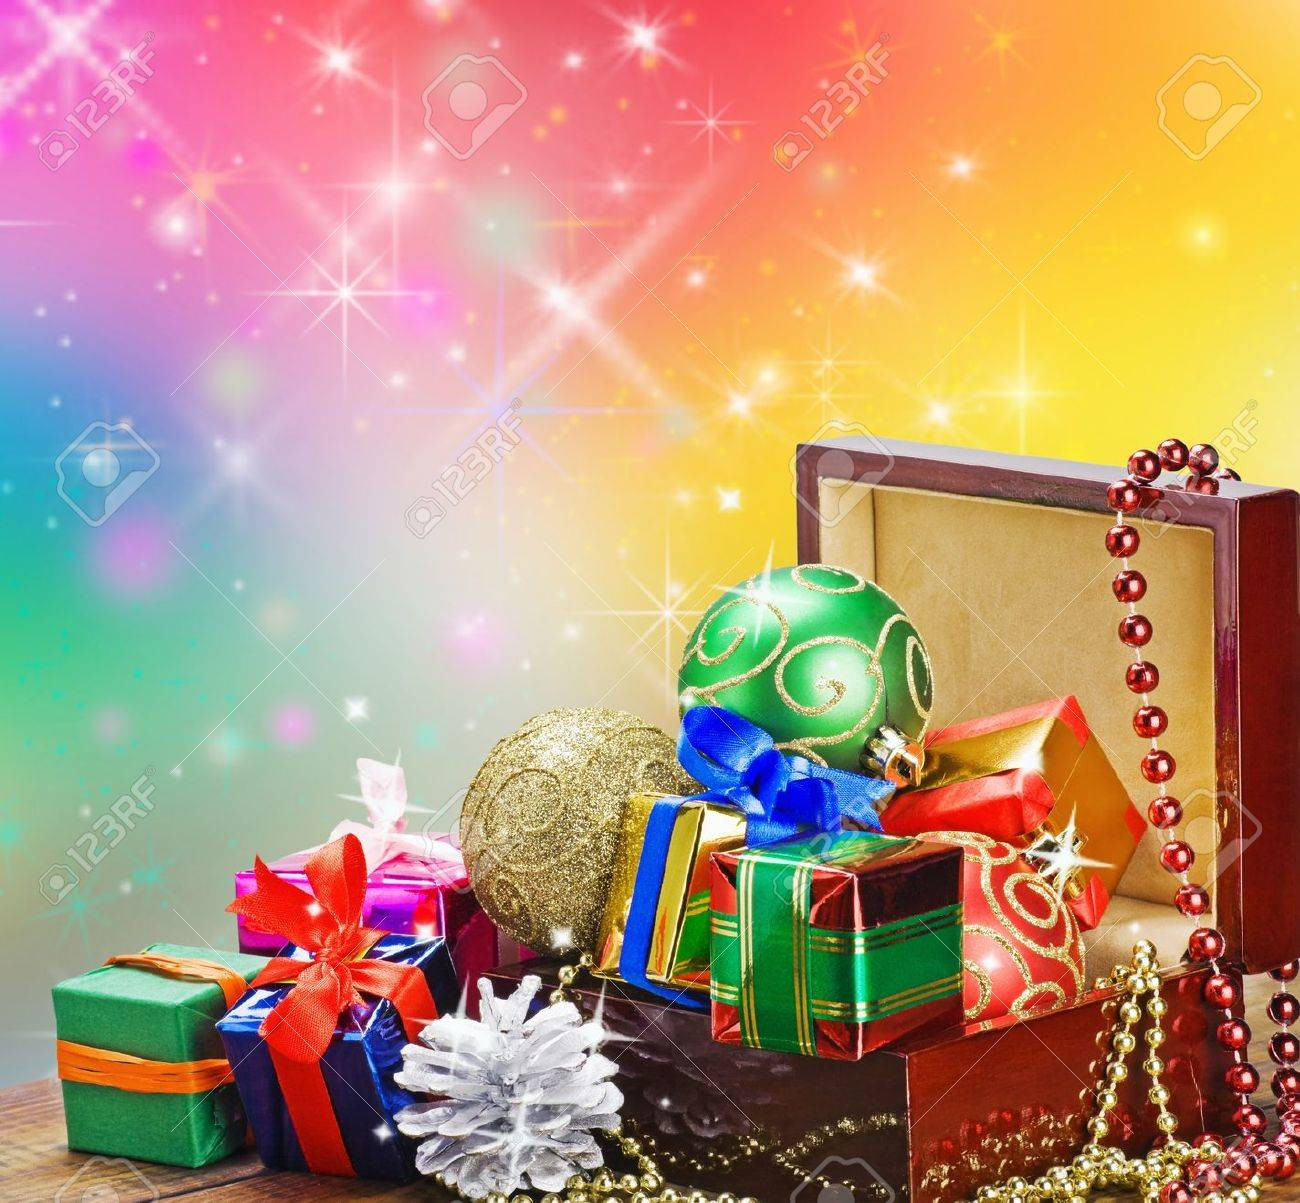 Christmas Decorations Balloons And Gifts In A Wooden Box On Stock Photo Picture And Royalty Free Image Image 15988820